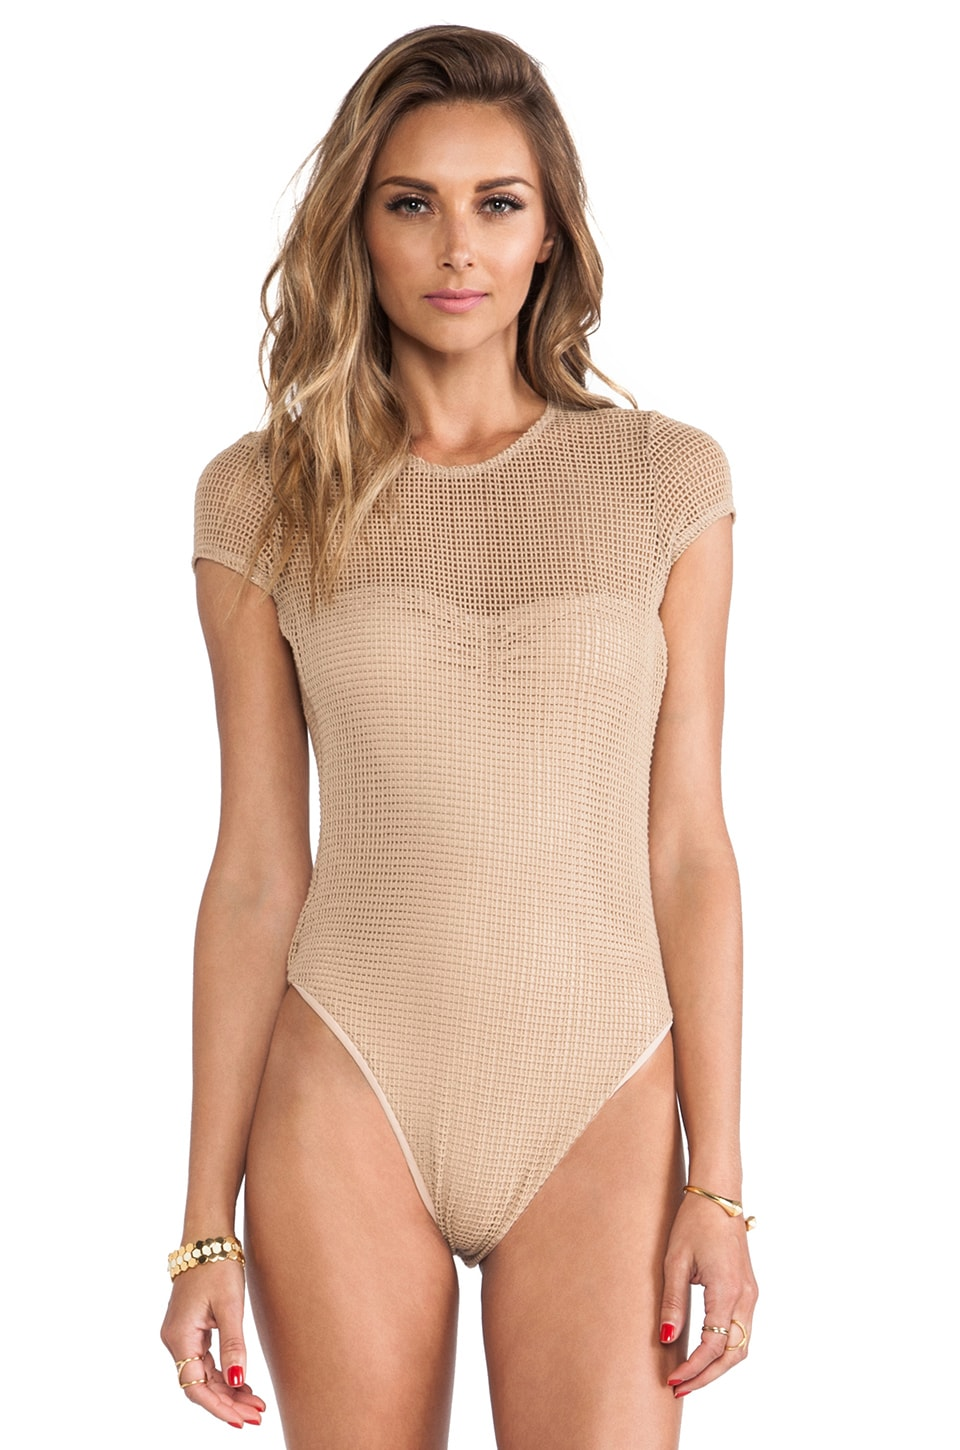 Blue Life Sahara Cap Sleeve One Piece in Sandstorm